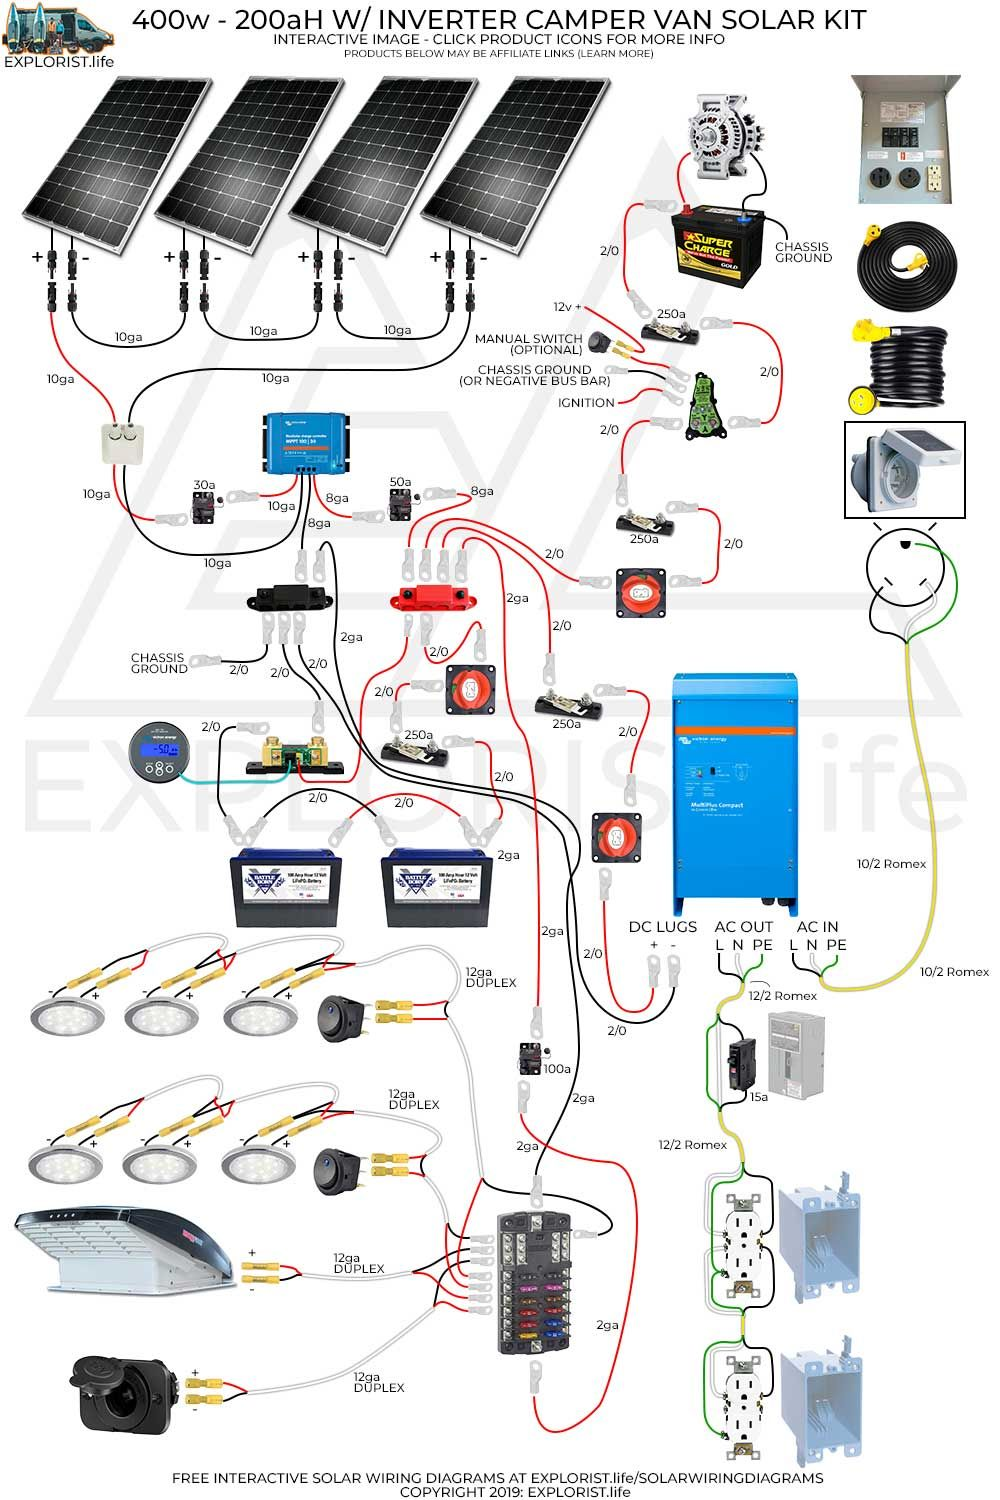 interactive diy solar wiring diagrams for campers van s rv s rh pinterest com how to create wiring diagram how to create wiring diagram